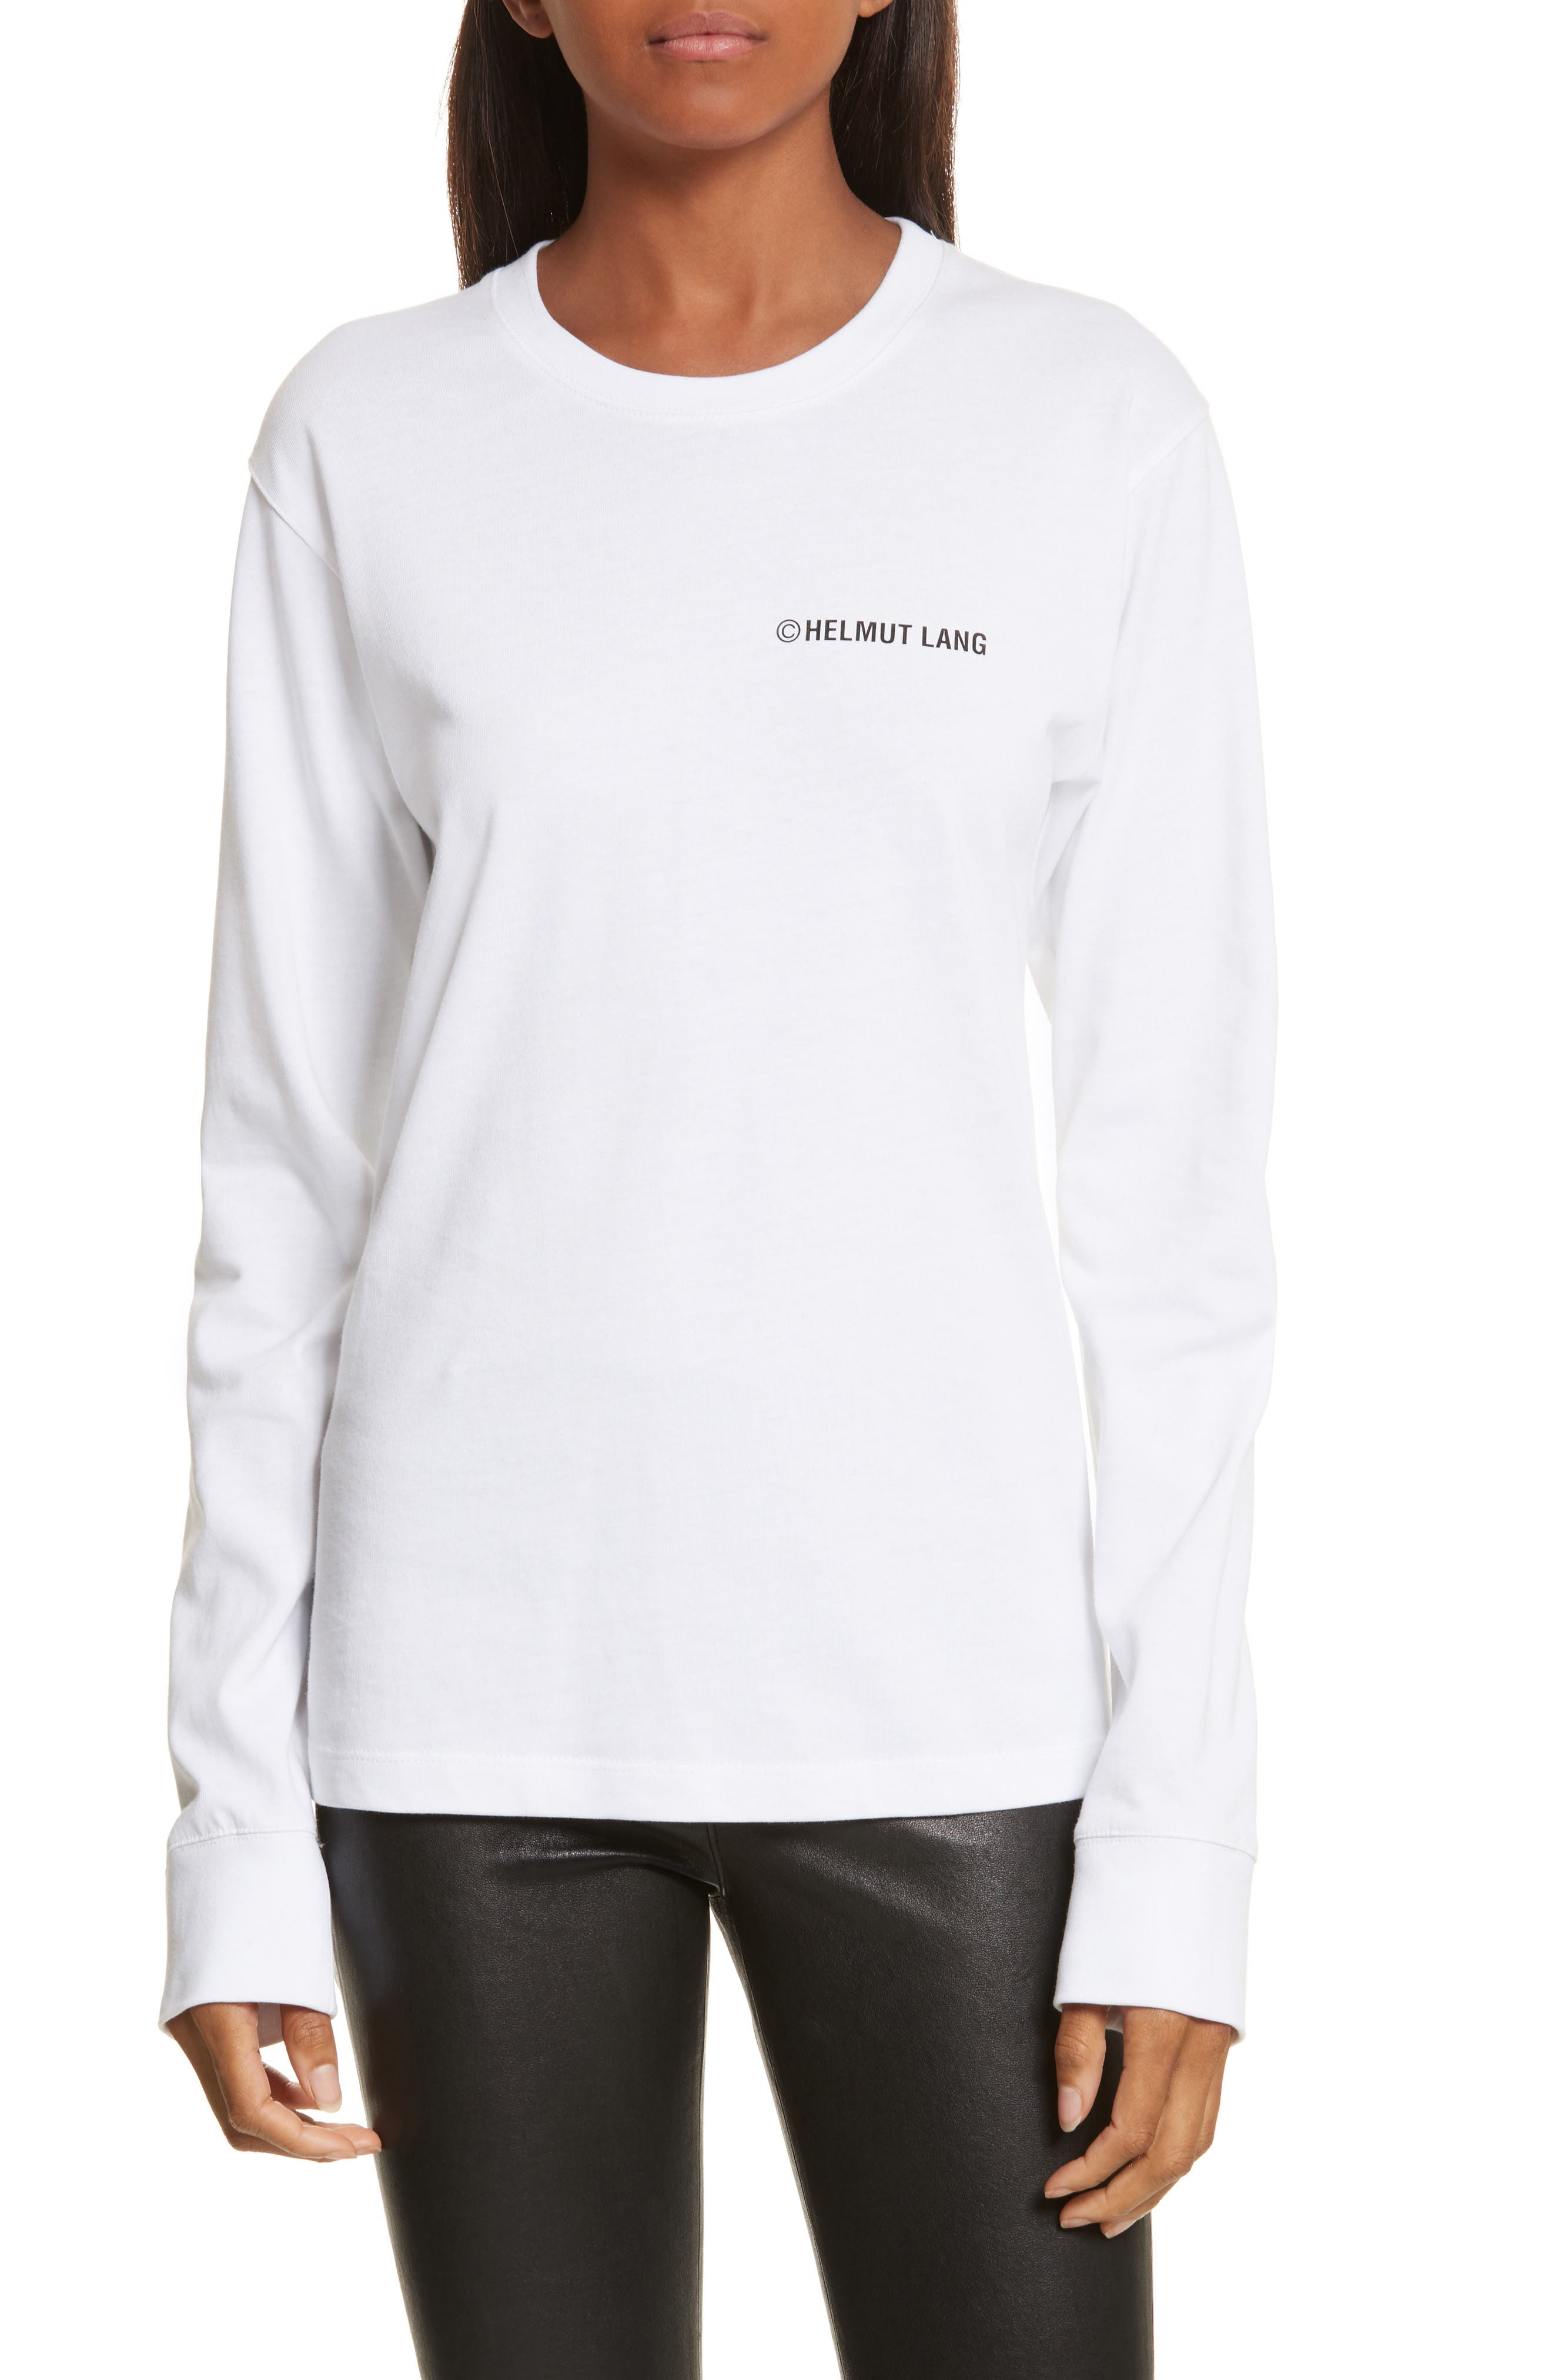 Helmut Lang Taxi Long Sleeve Tee